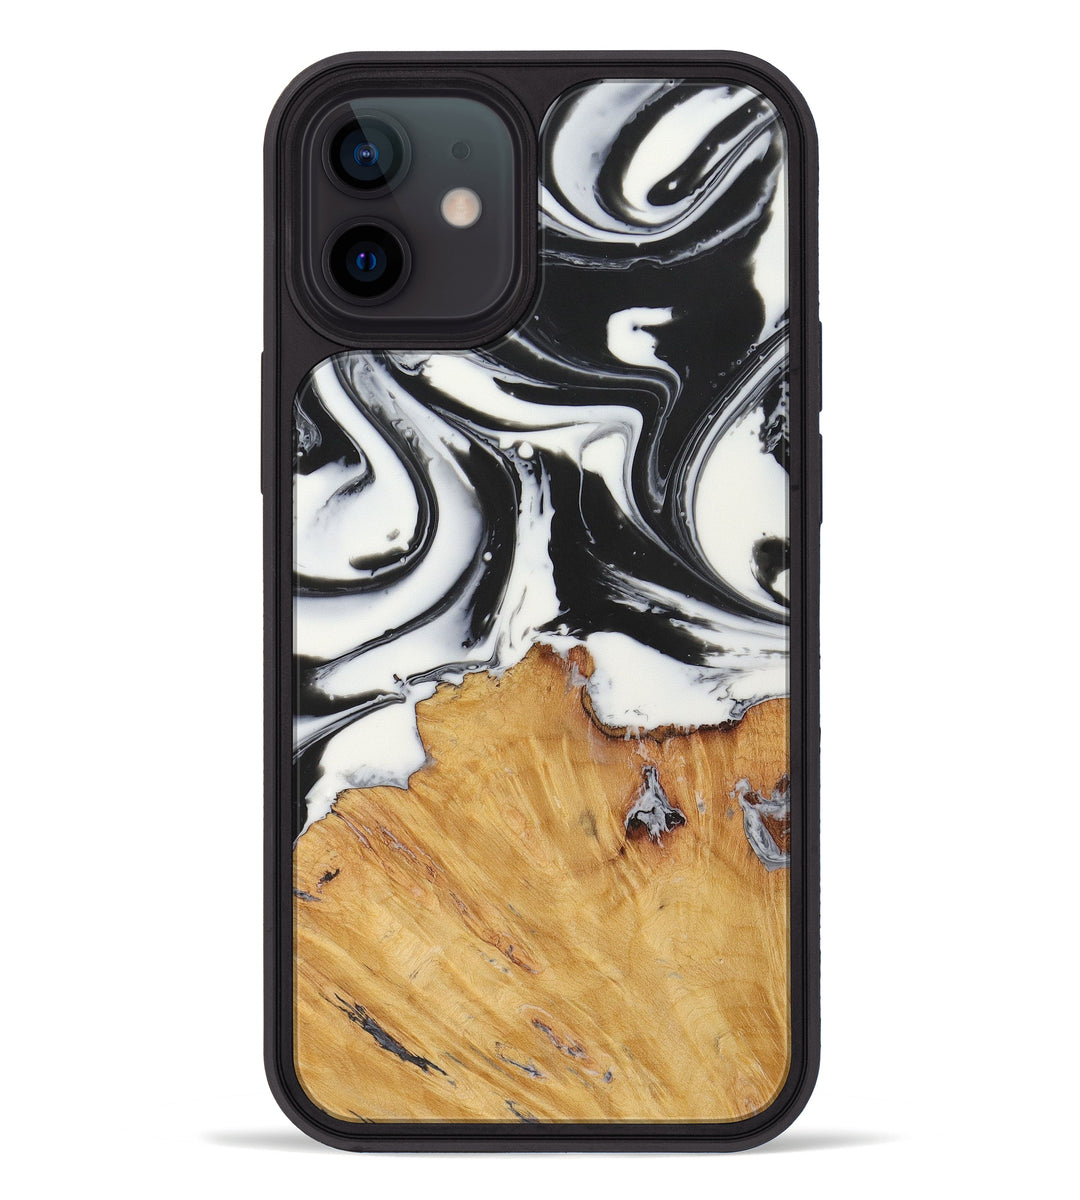 iPhone 12 Wood+Resin Phone Case - Arlinda (Black & White, 427797)